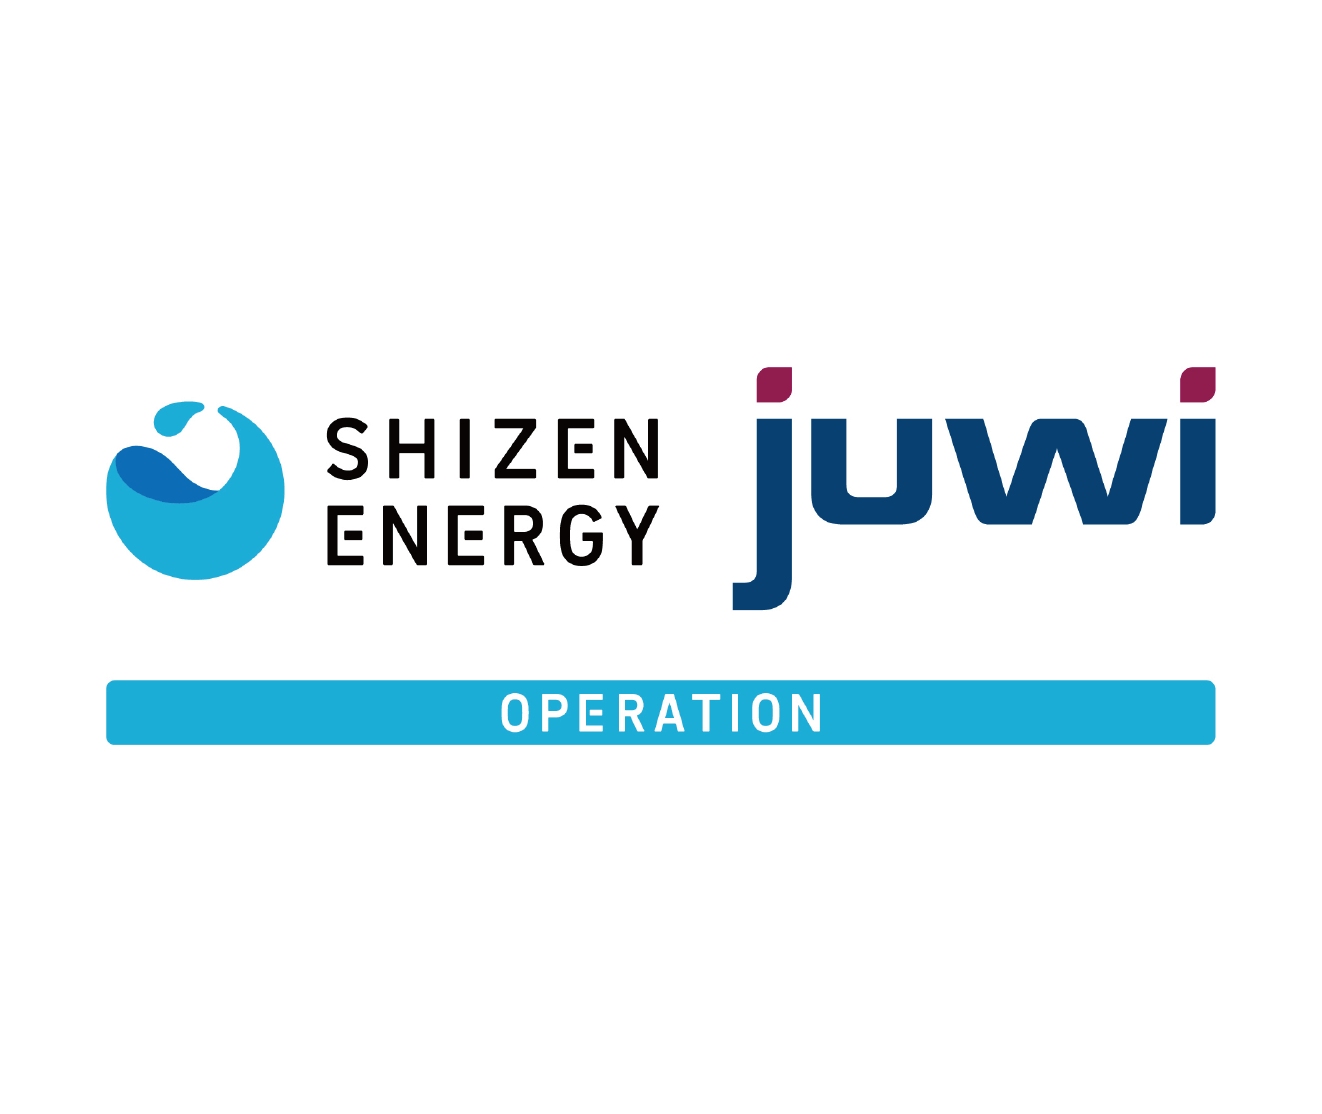 juwi Shizen Energy Operation Relocates Headquaters in Tokyo